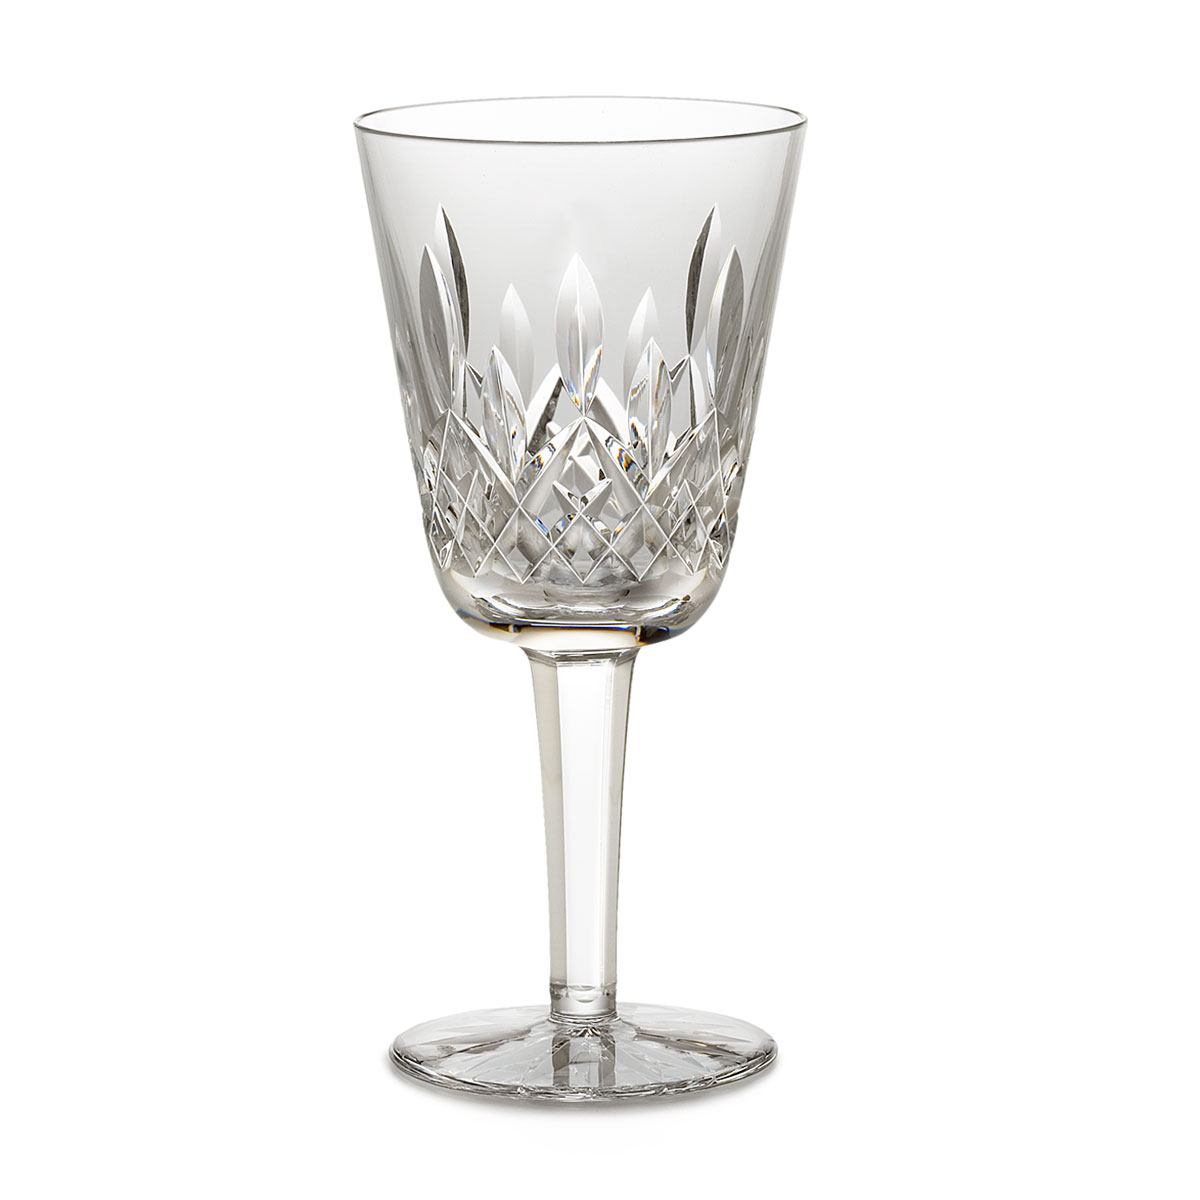 Waterford Crystal, Lismore Classic Crystal White Wine, Single